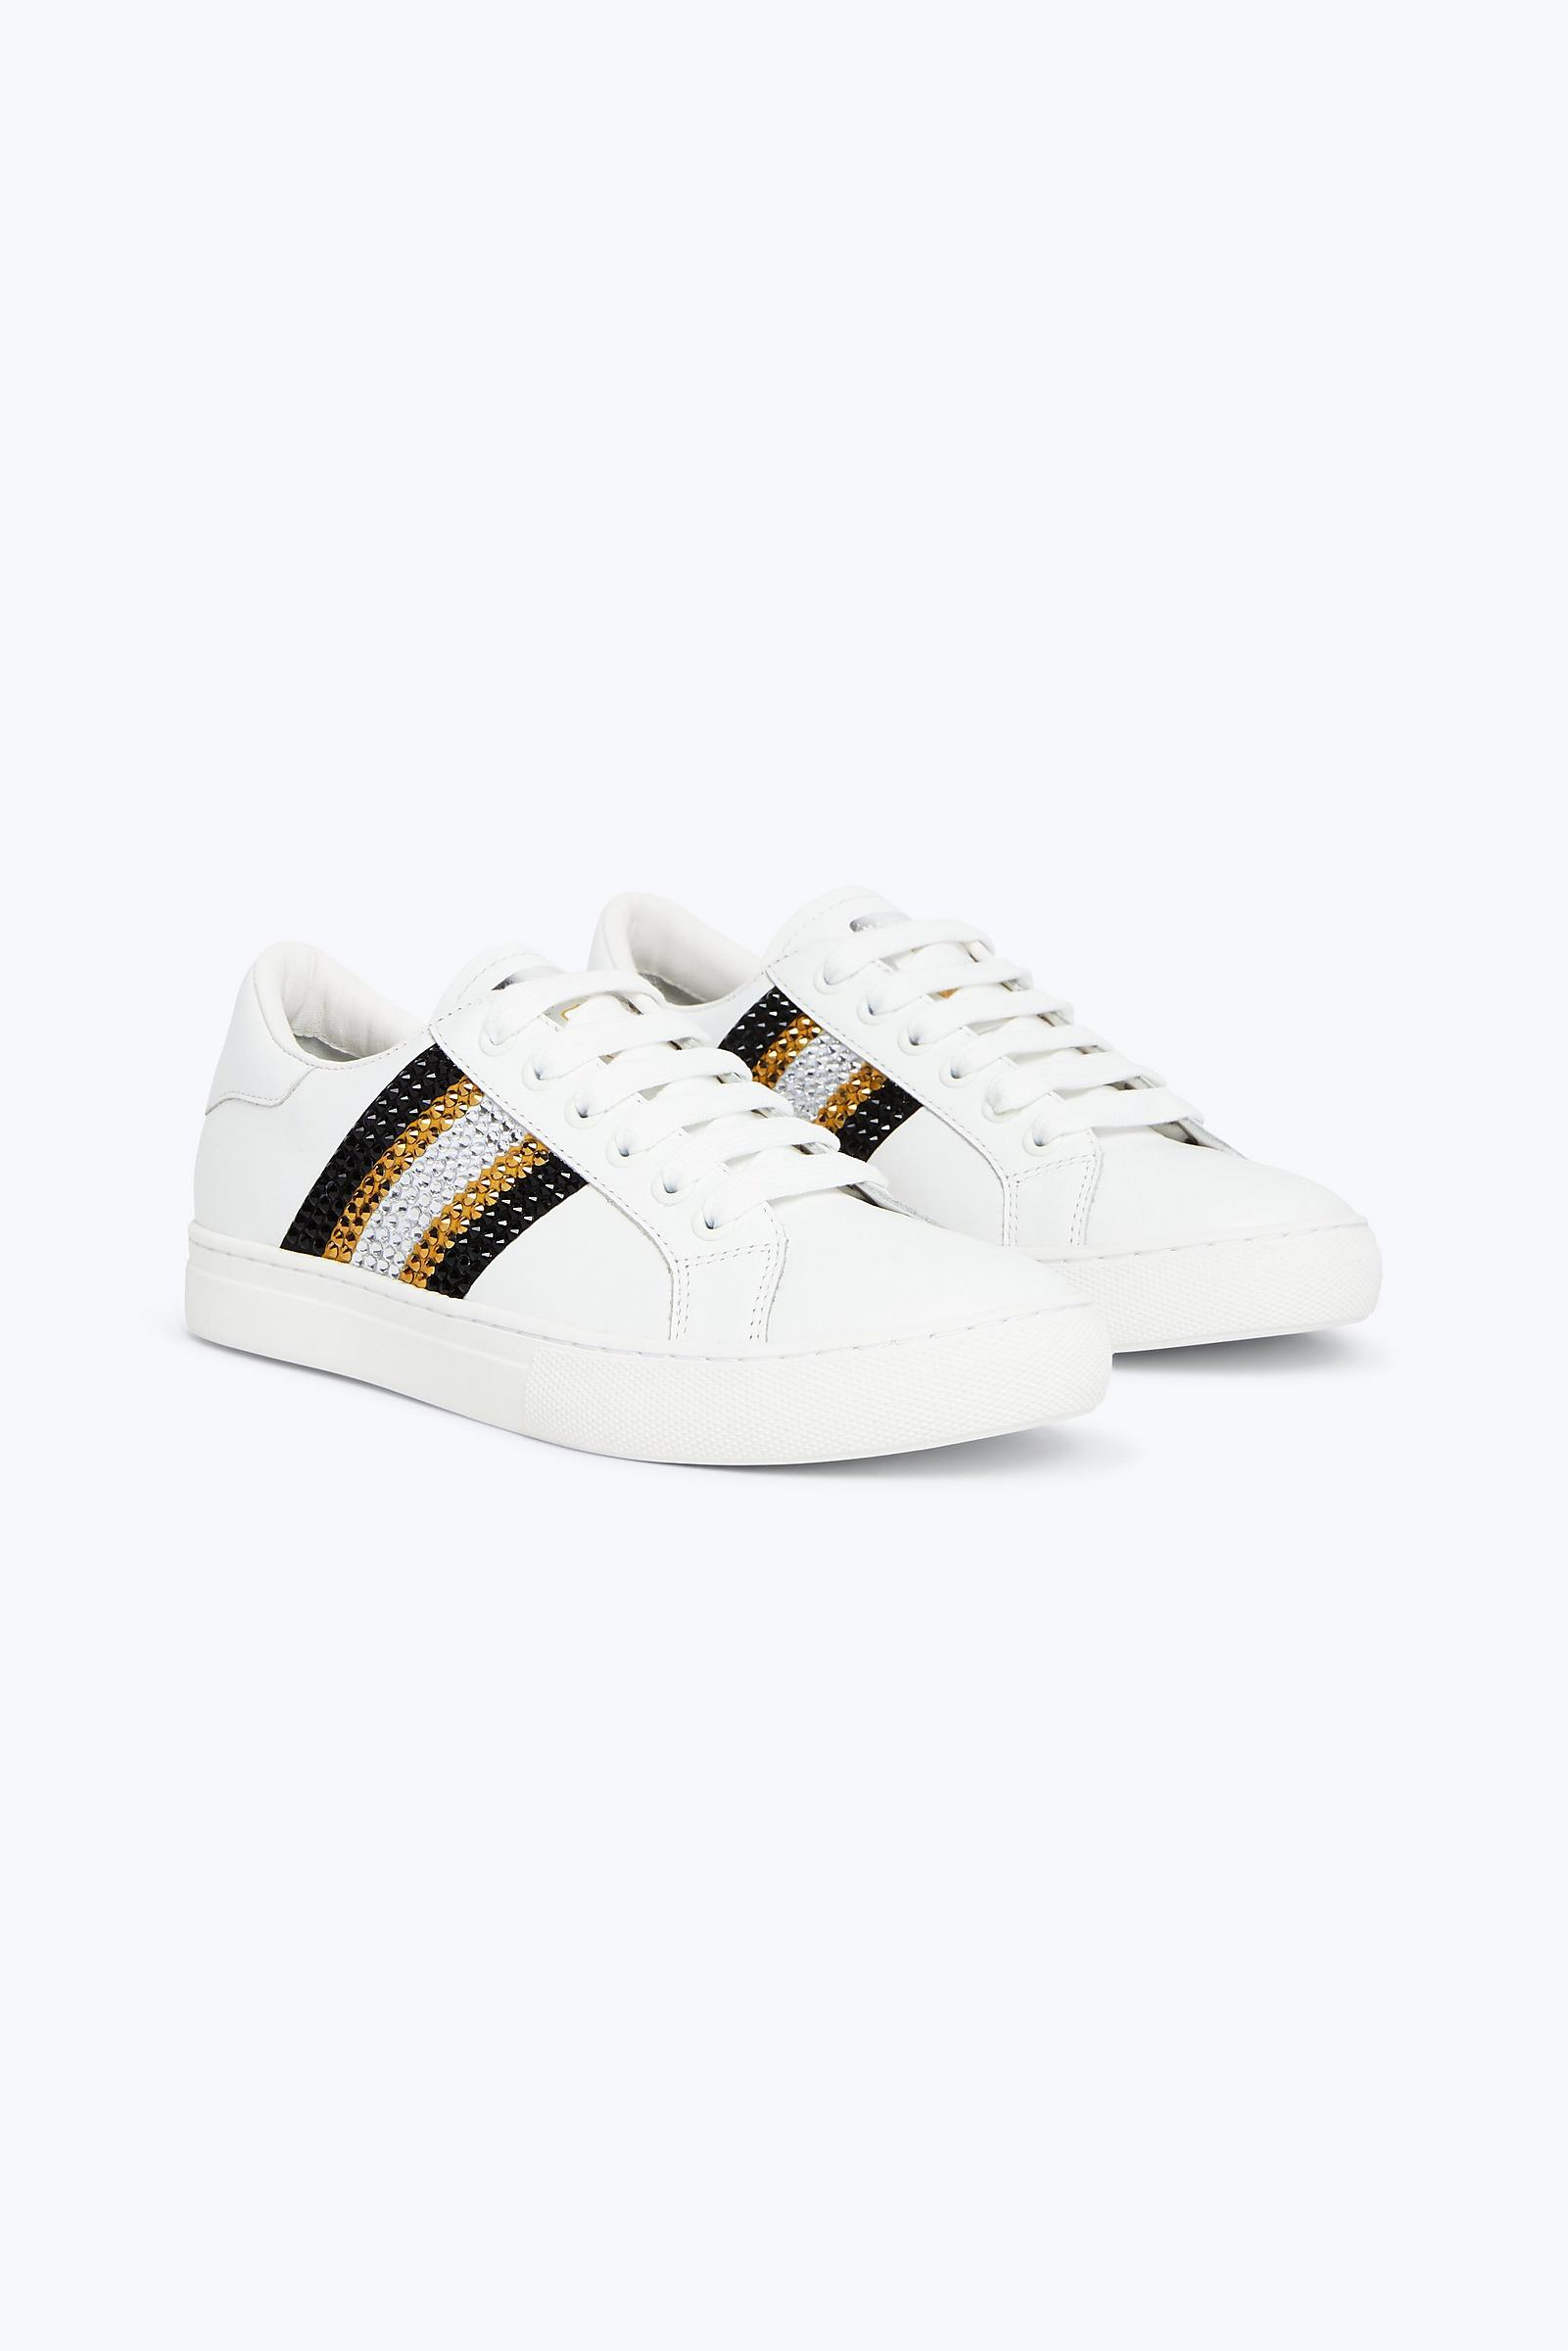 6604db95afec06 Lyst - Marc Jacobs Bedazzled Stripe Empire Sneaker in White